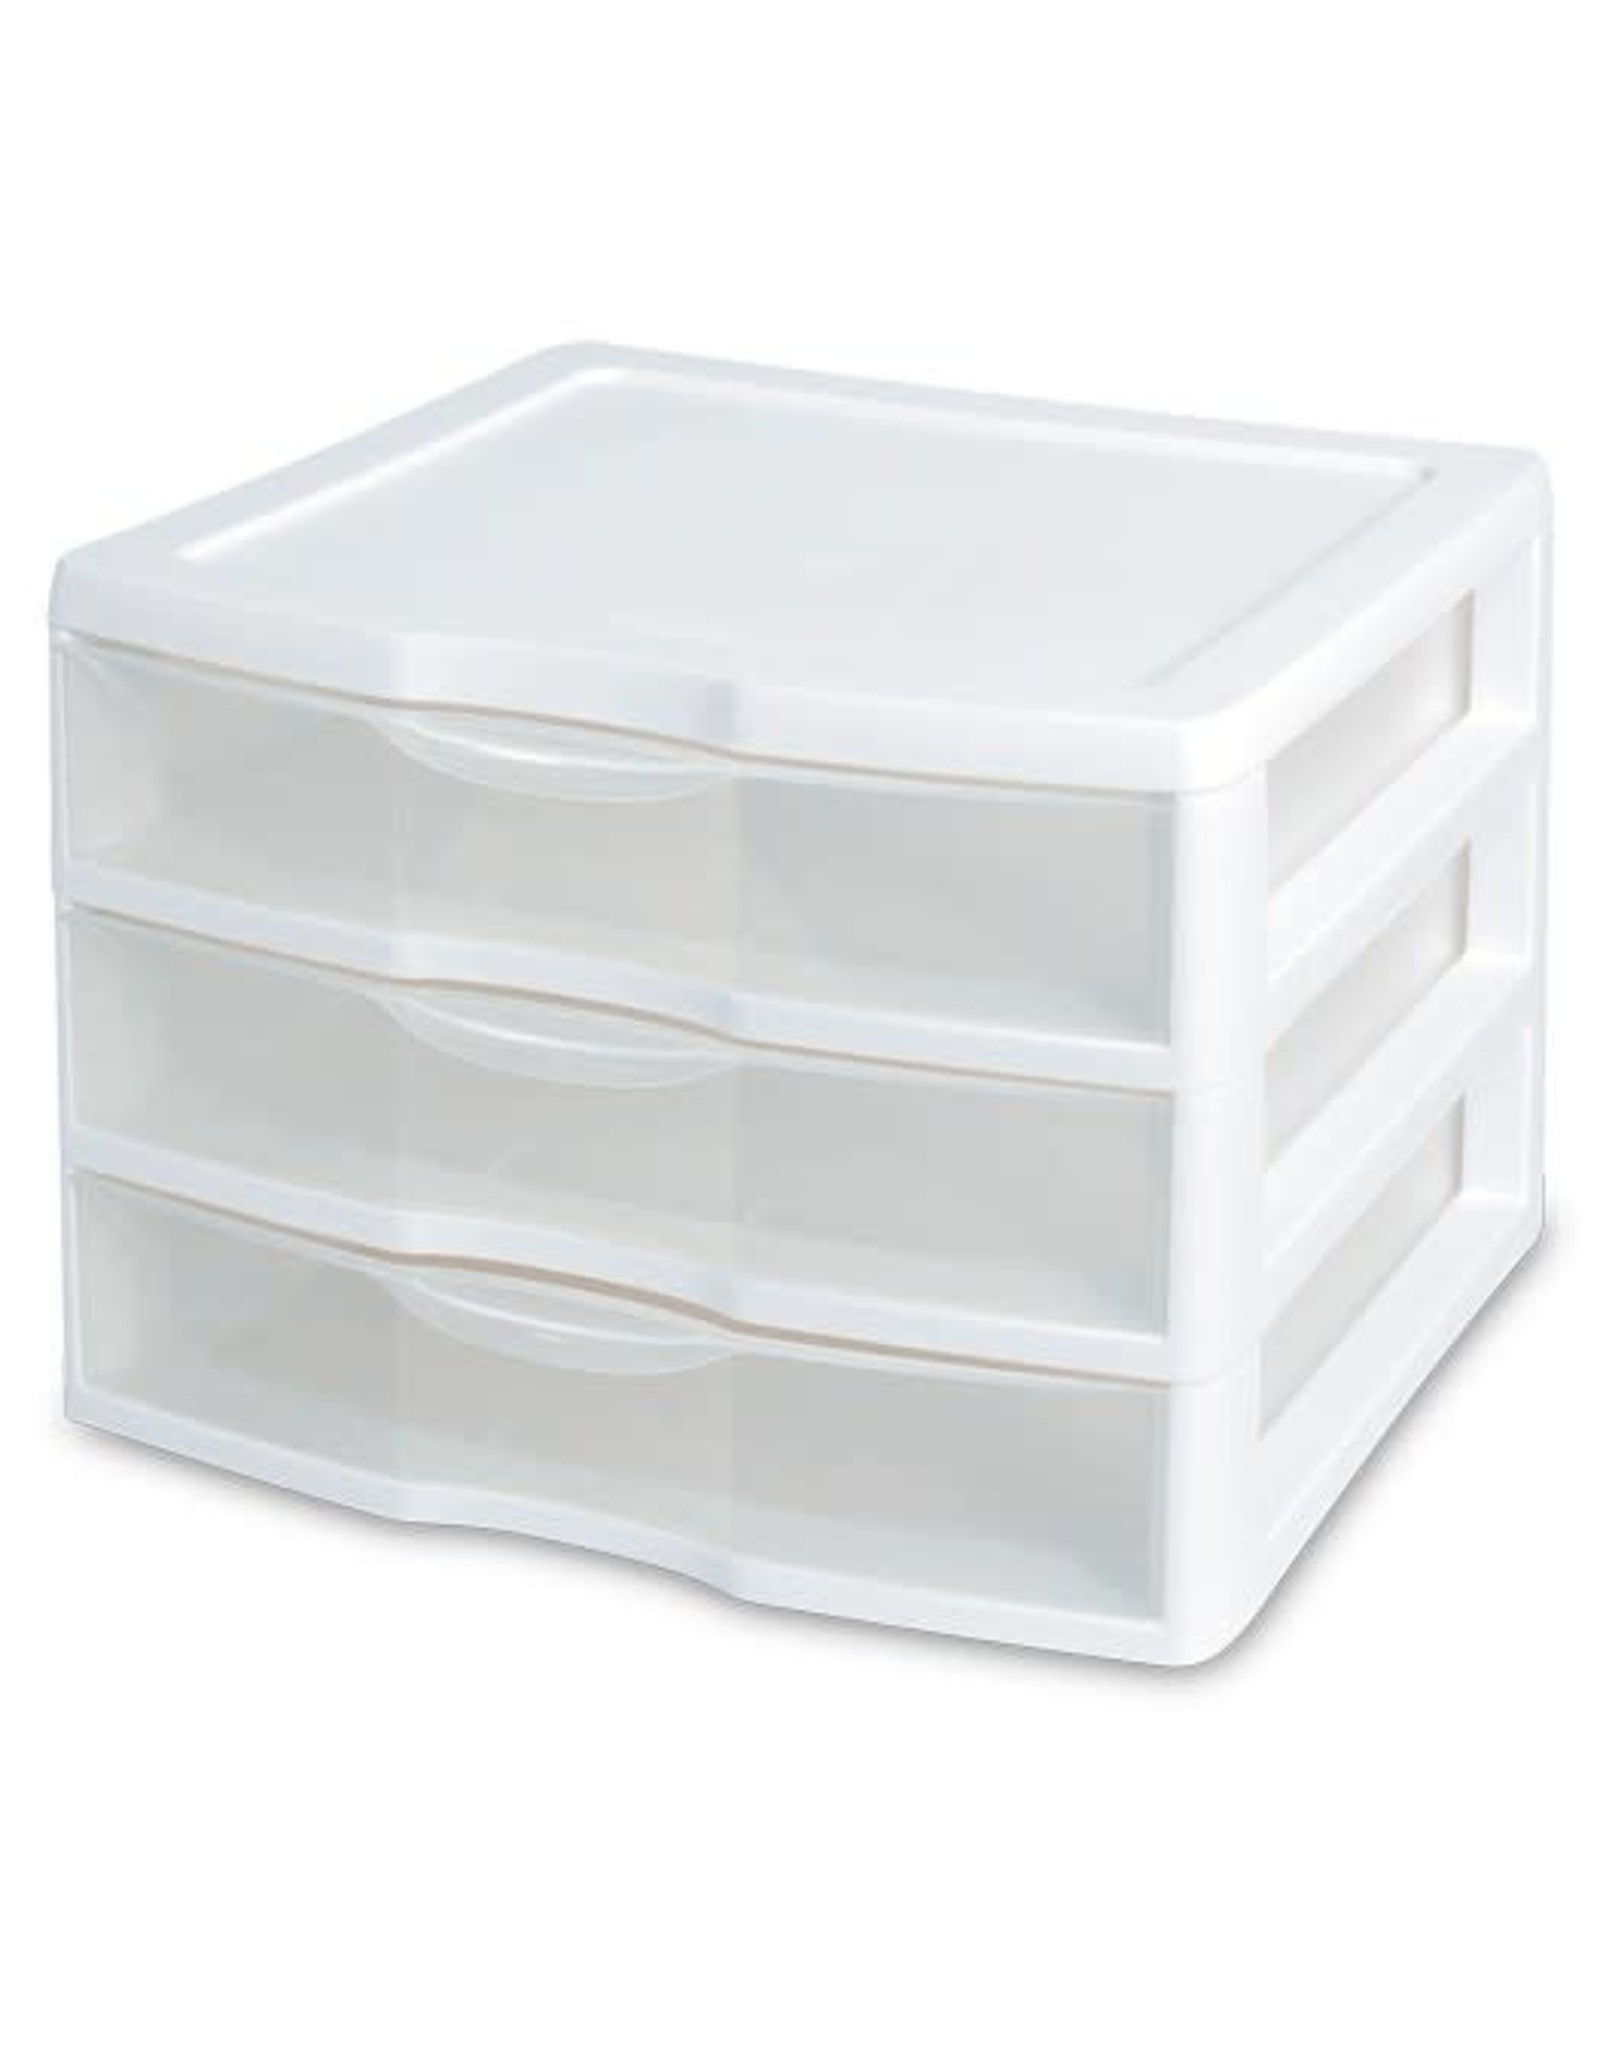 """DRAWERS-3/14-1/2"""" WIDE CLEARVIEW"""